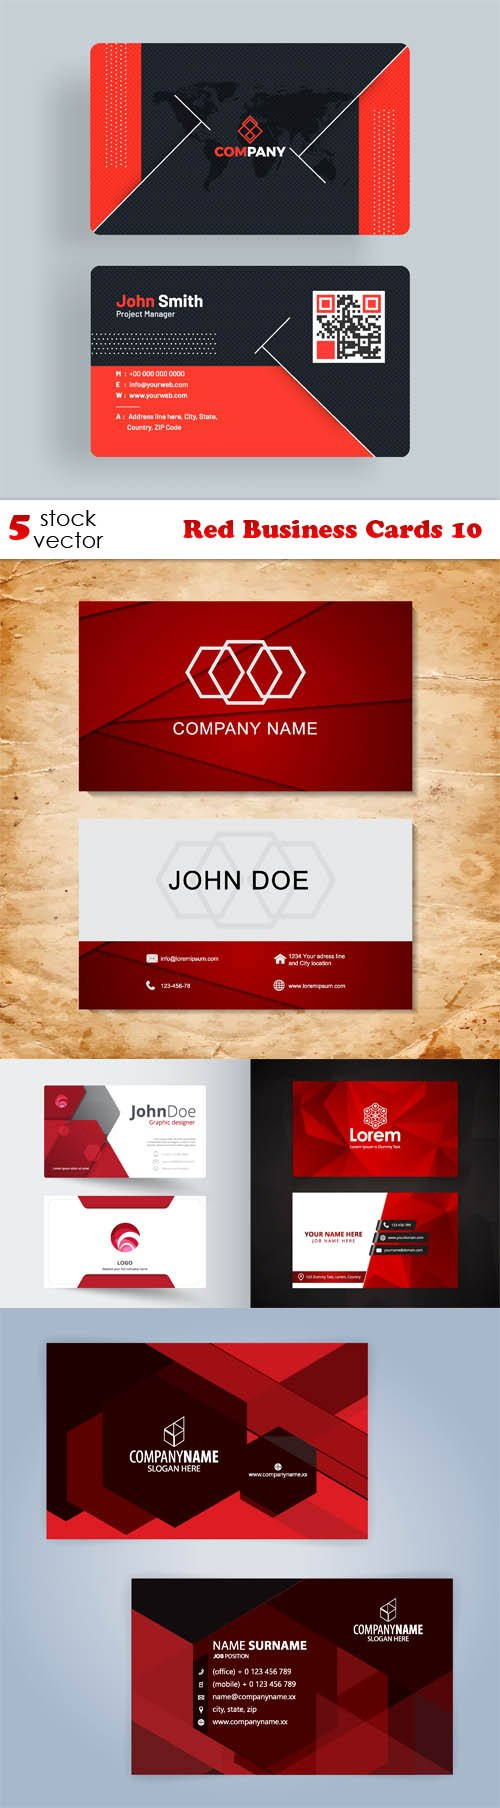 Vectors - Red Business Cards 10